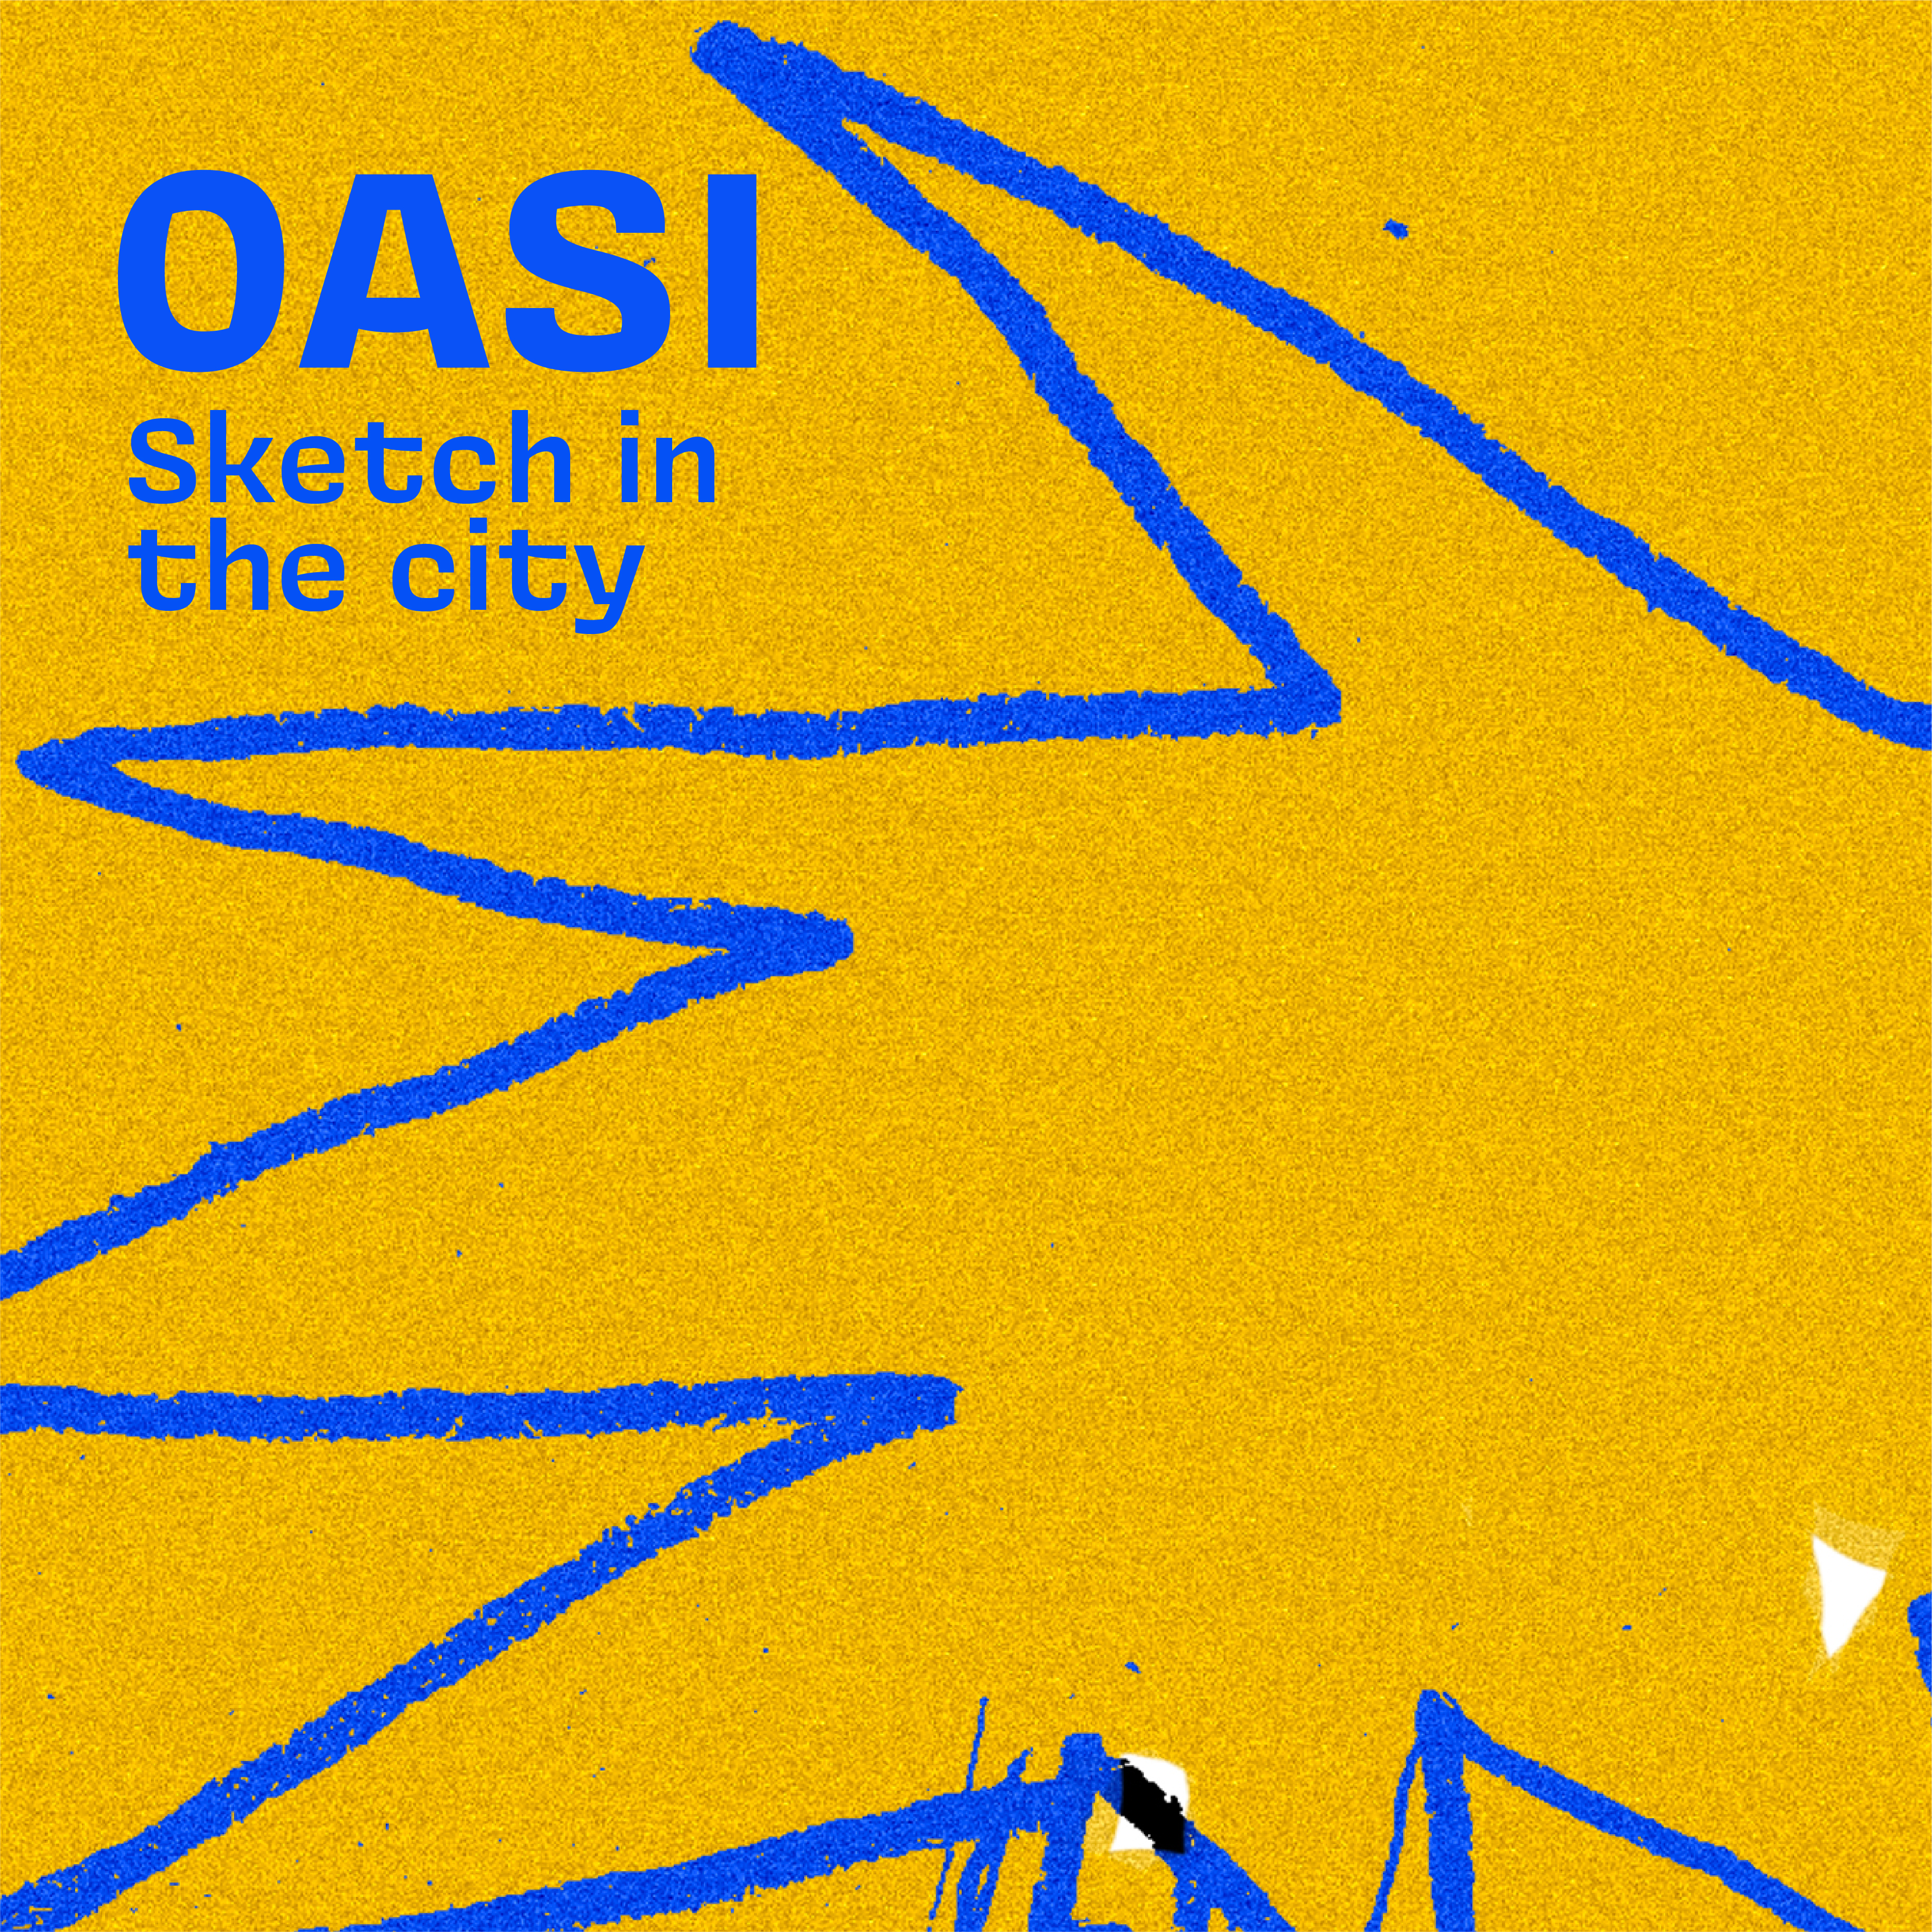 Sketch in the city @Oasi